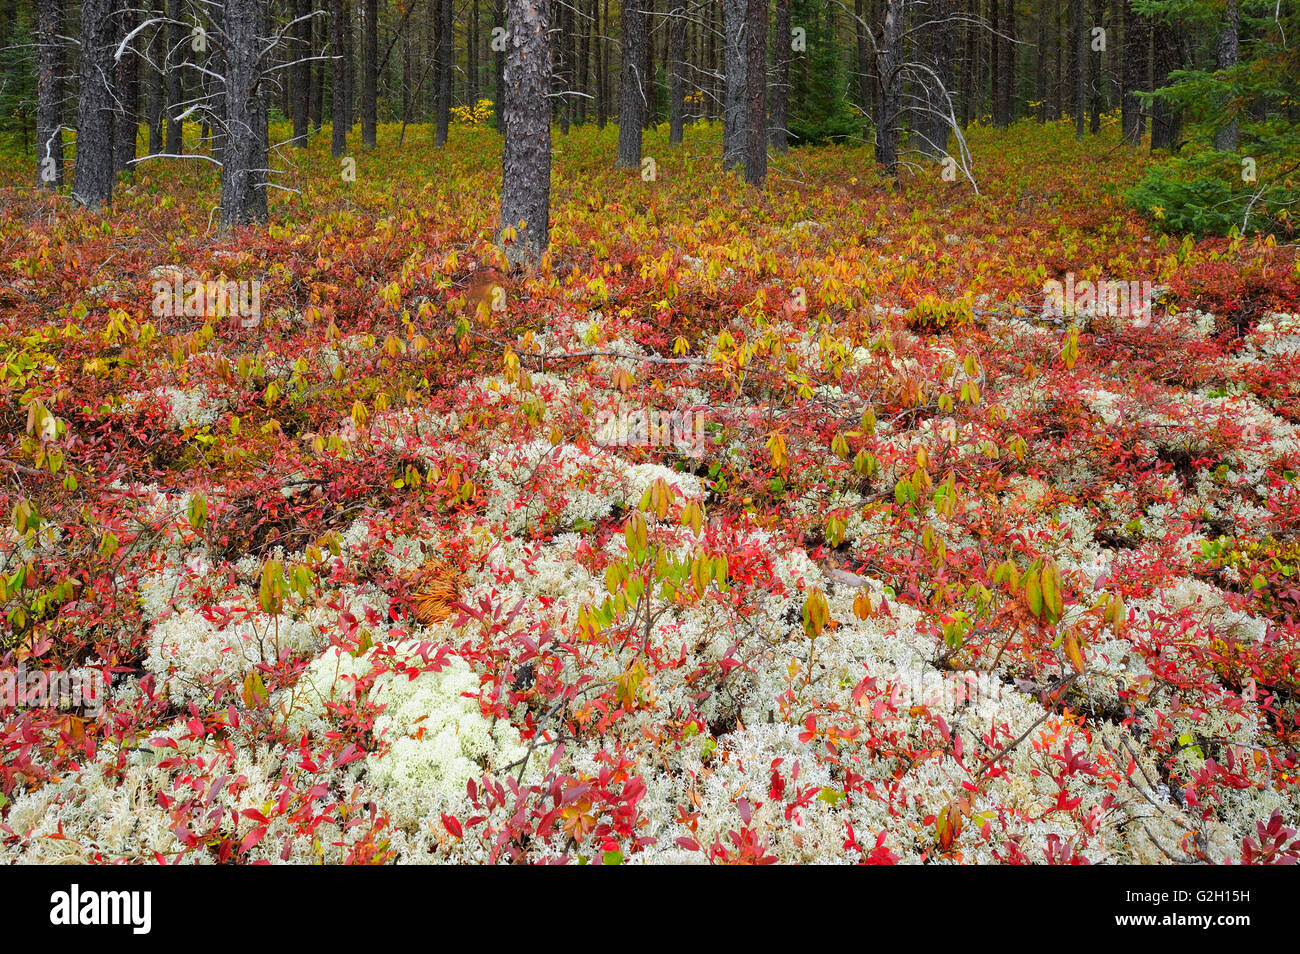 Forest cover in jack pine stand made up of lichens and blueberry in autumn color near Gogama Ontario Canada - Stock Image